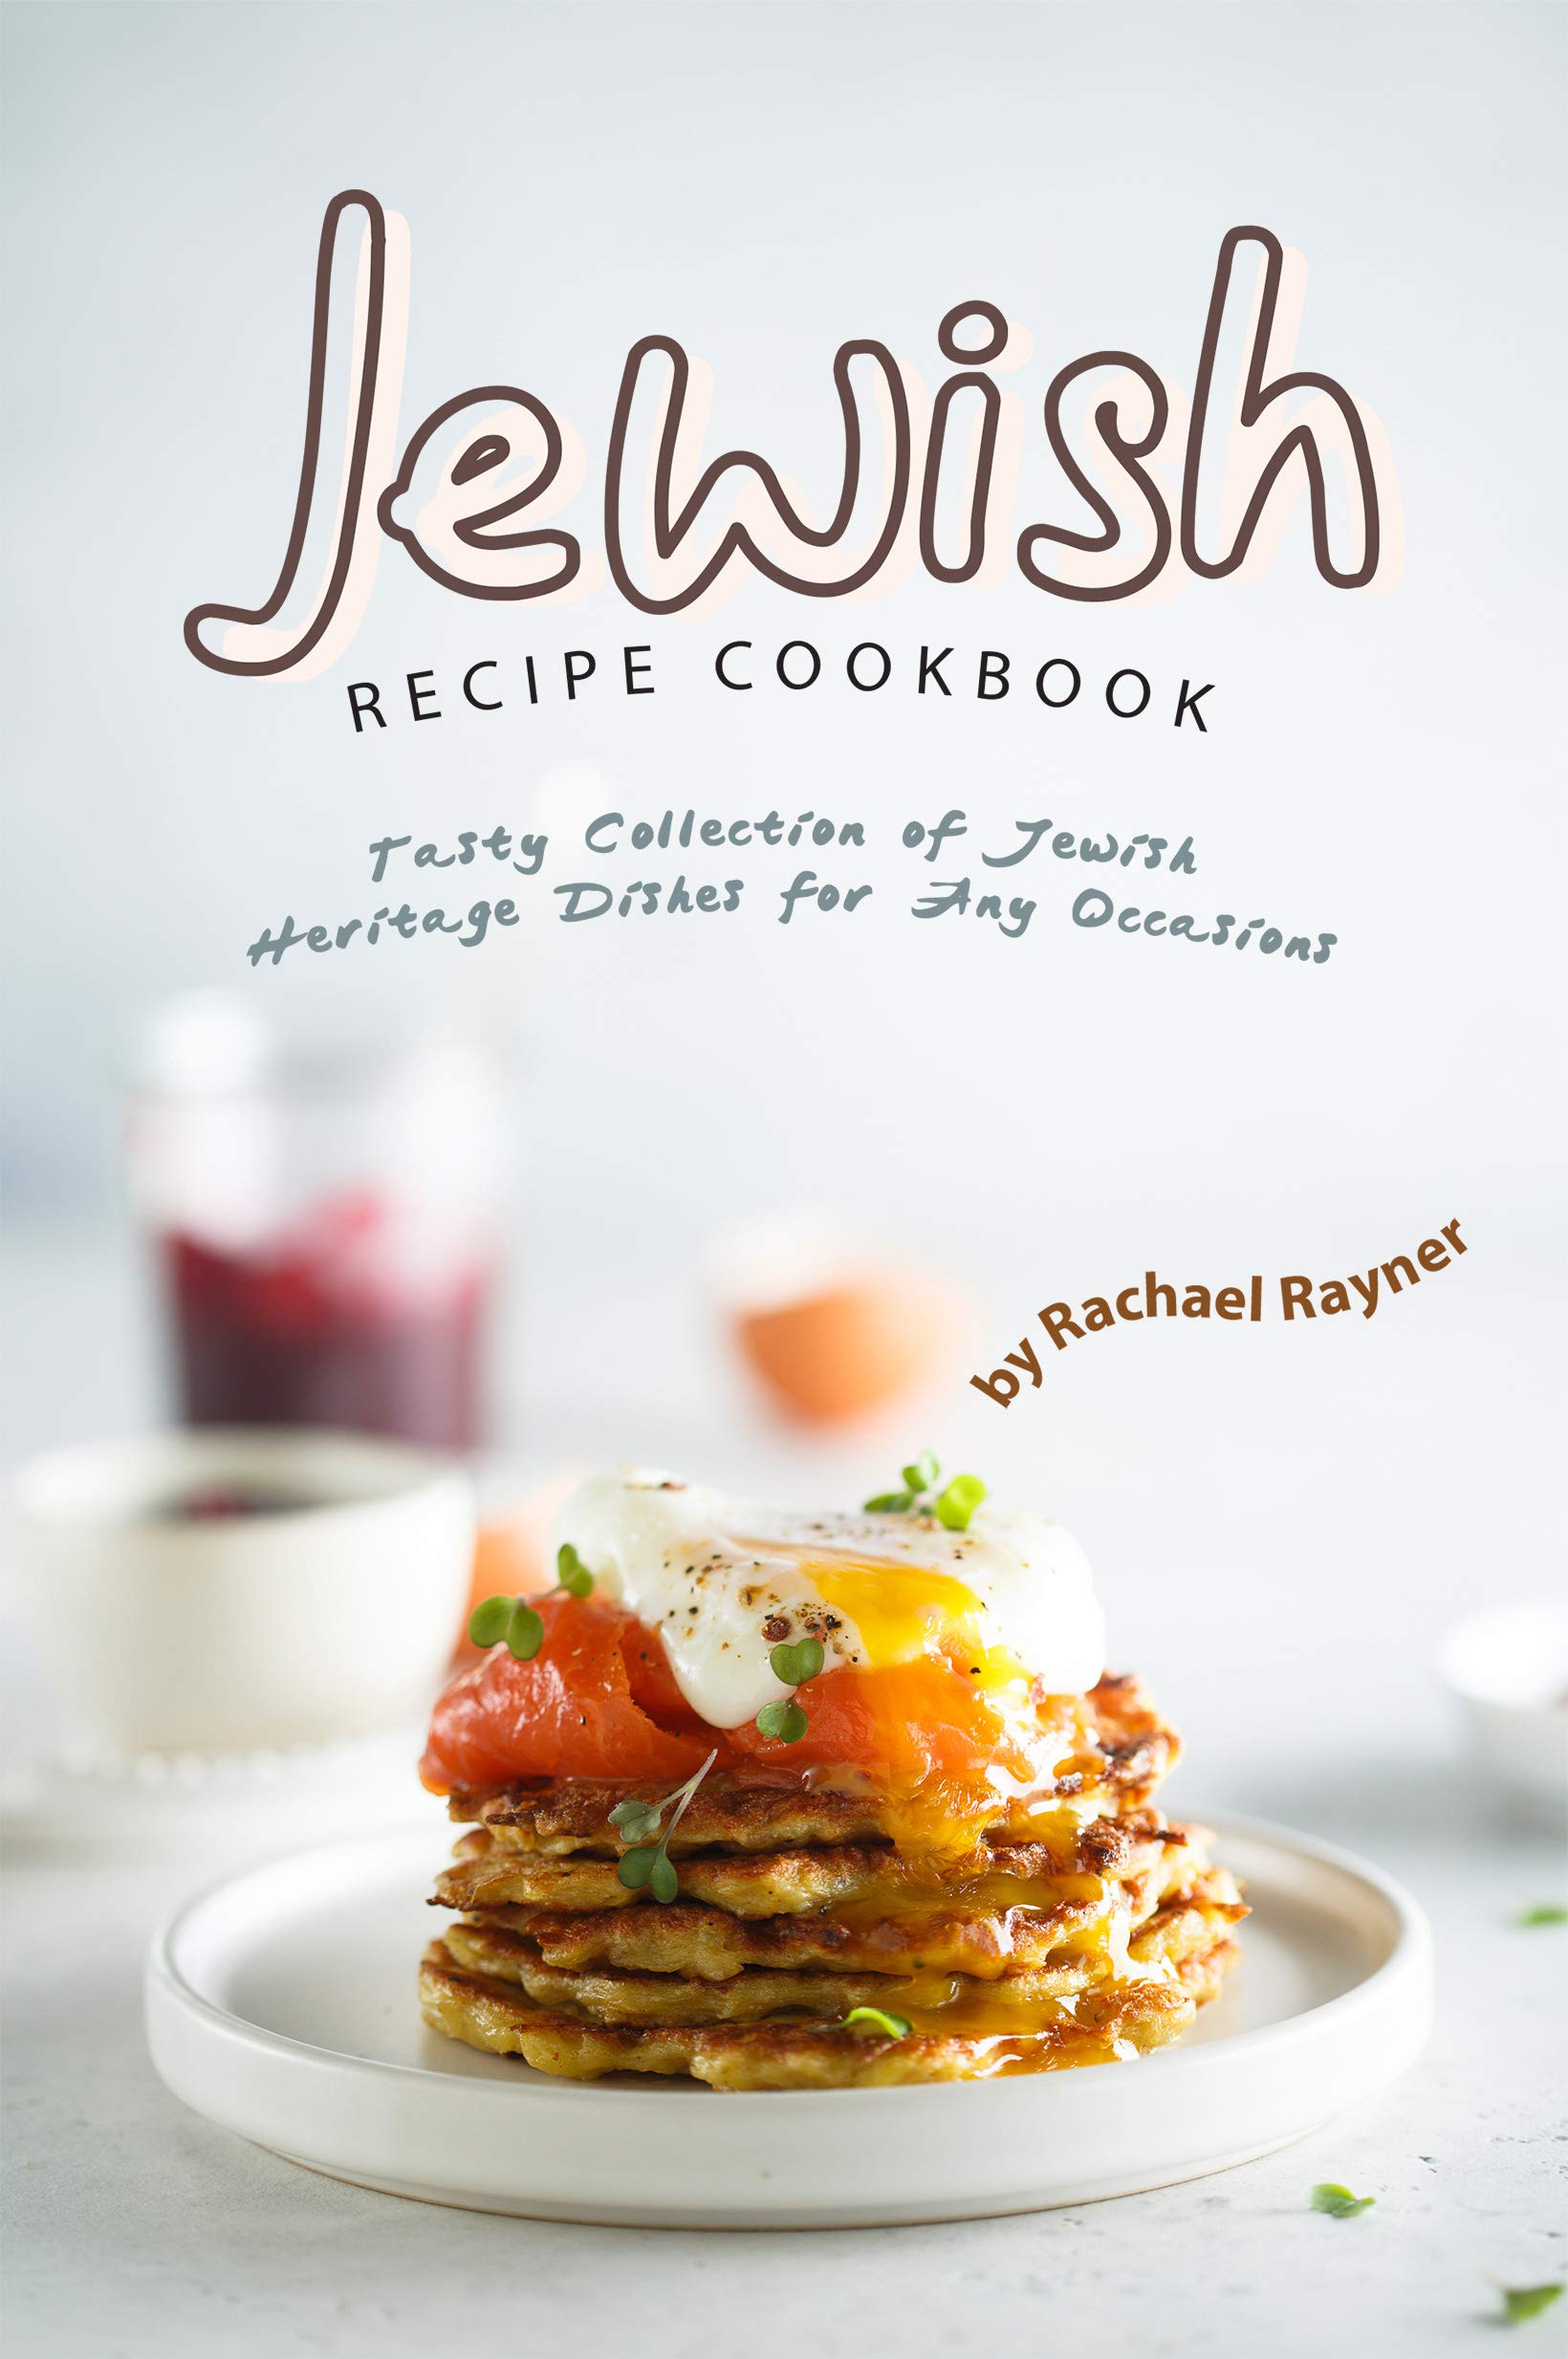 Jewish Recipe Cookbook  Tasty Collection Of Jewish Heritage Dishes For Any Occasions  English Edition